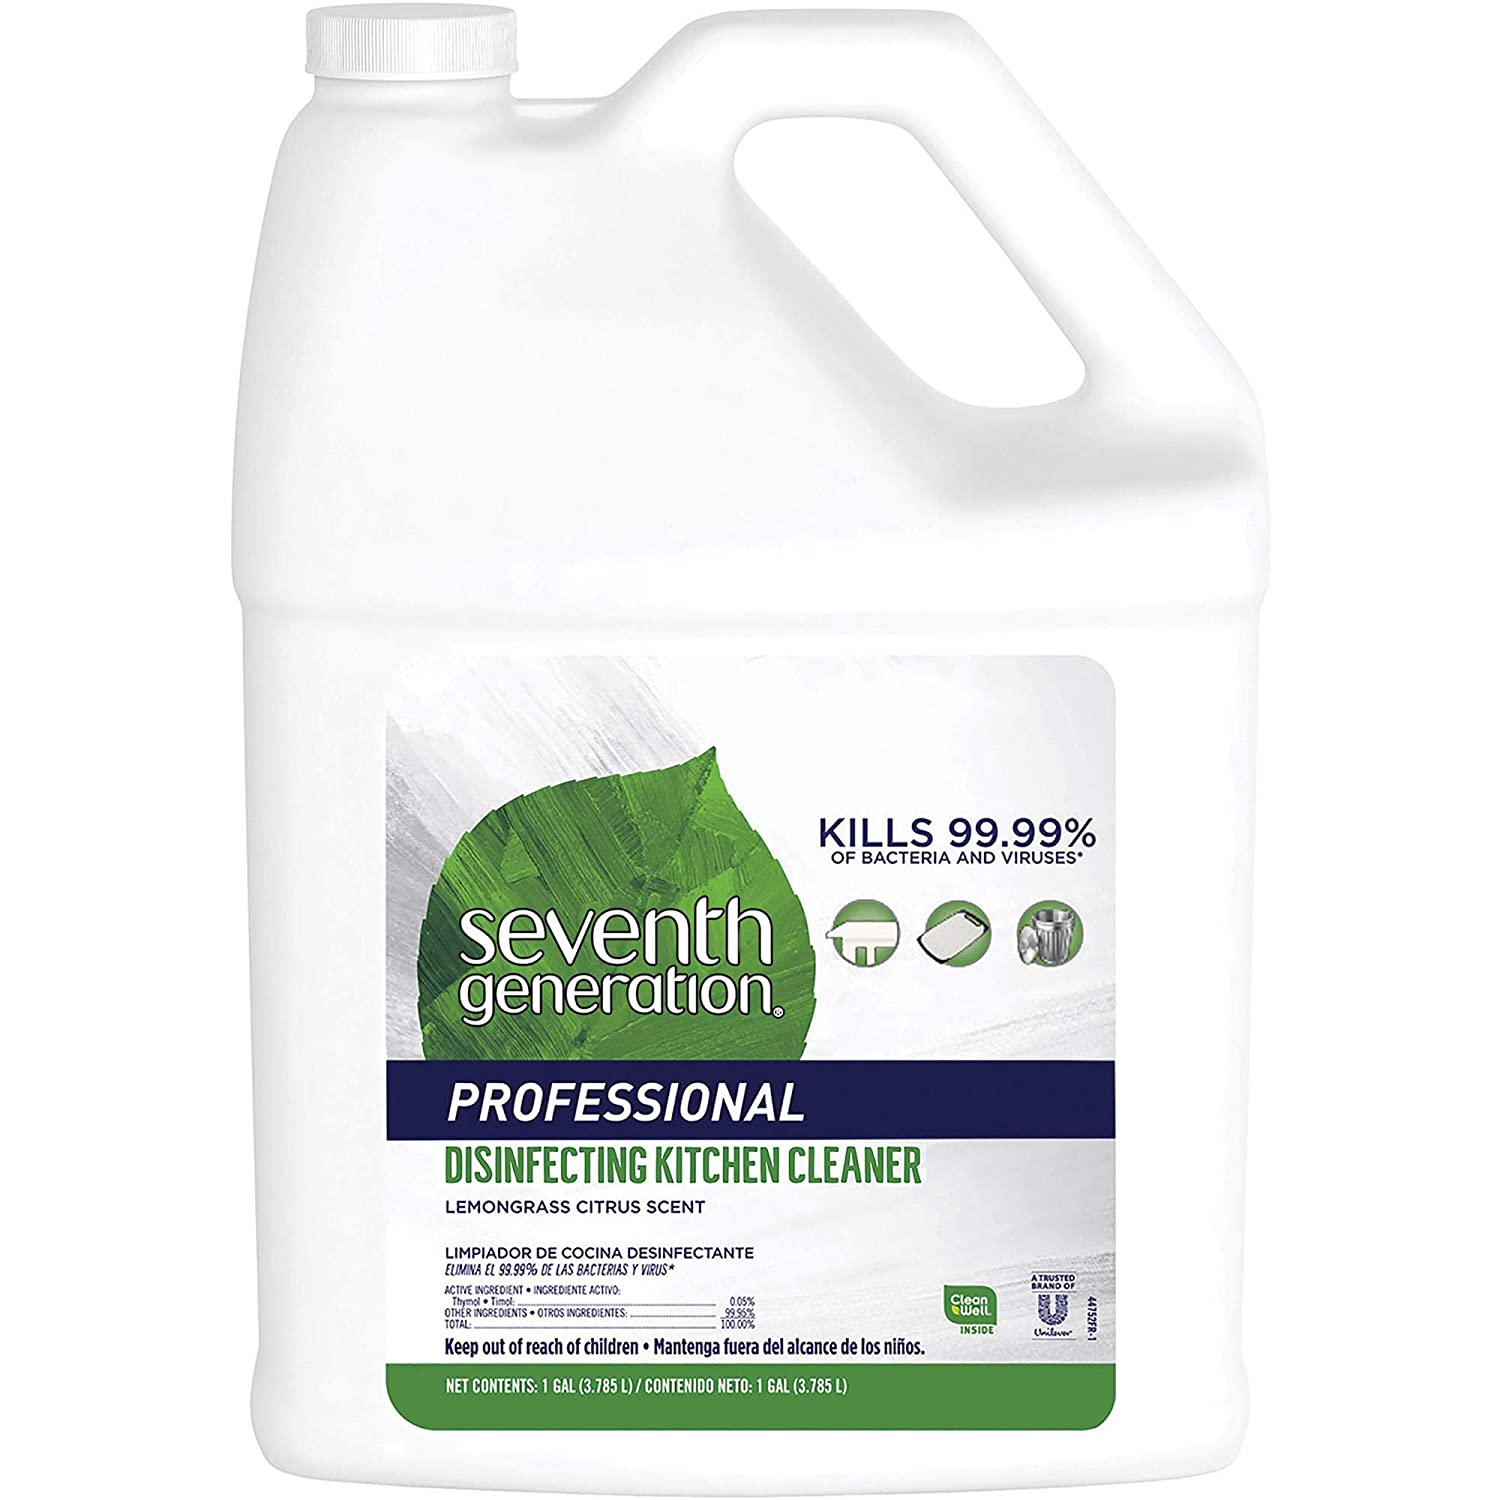 Seventh Generation Professional Disinfecting Kitchen Cleaner Refill, Lemongrass Citrus, 256 Fl Oz (Pack of 2)